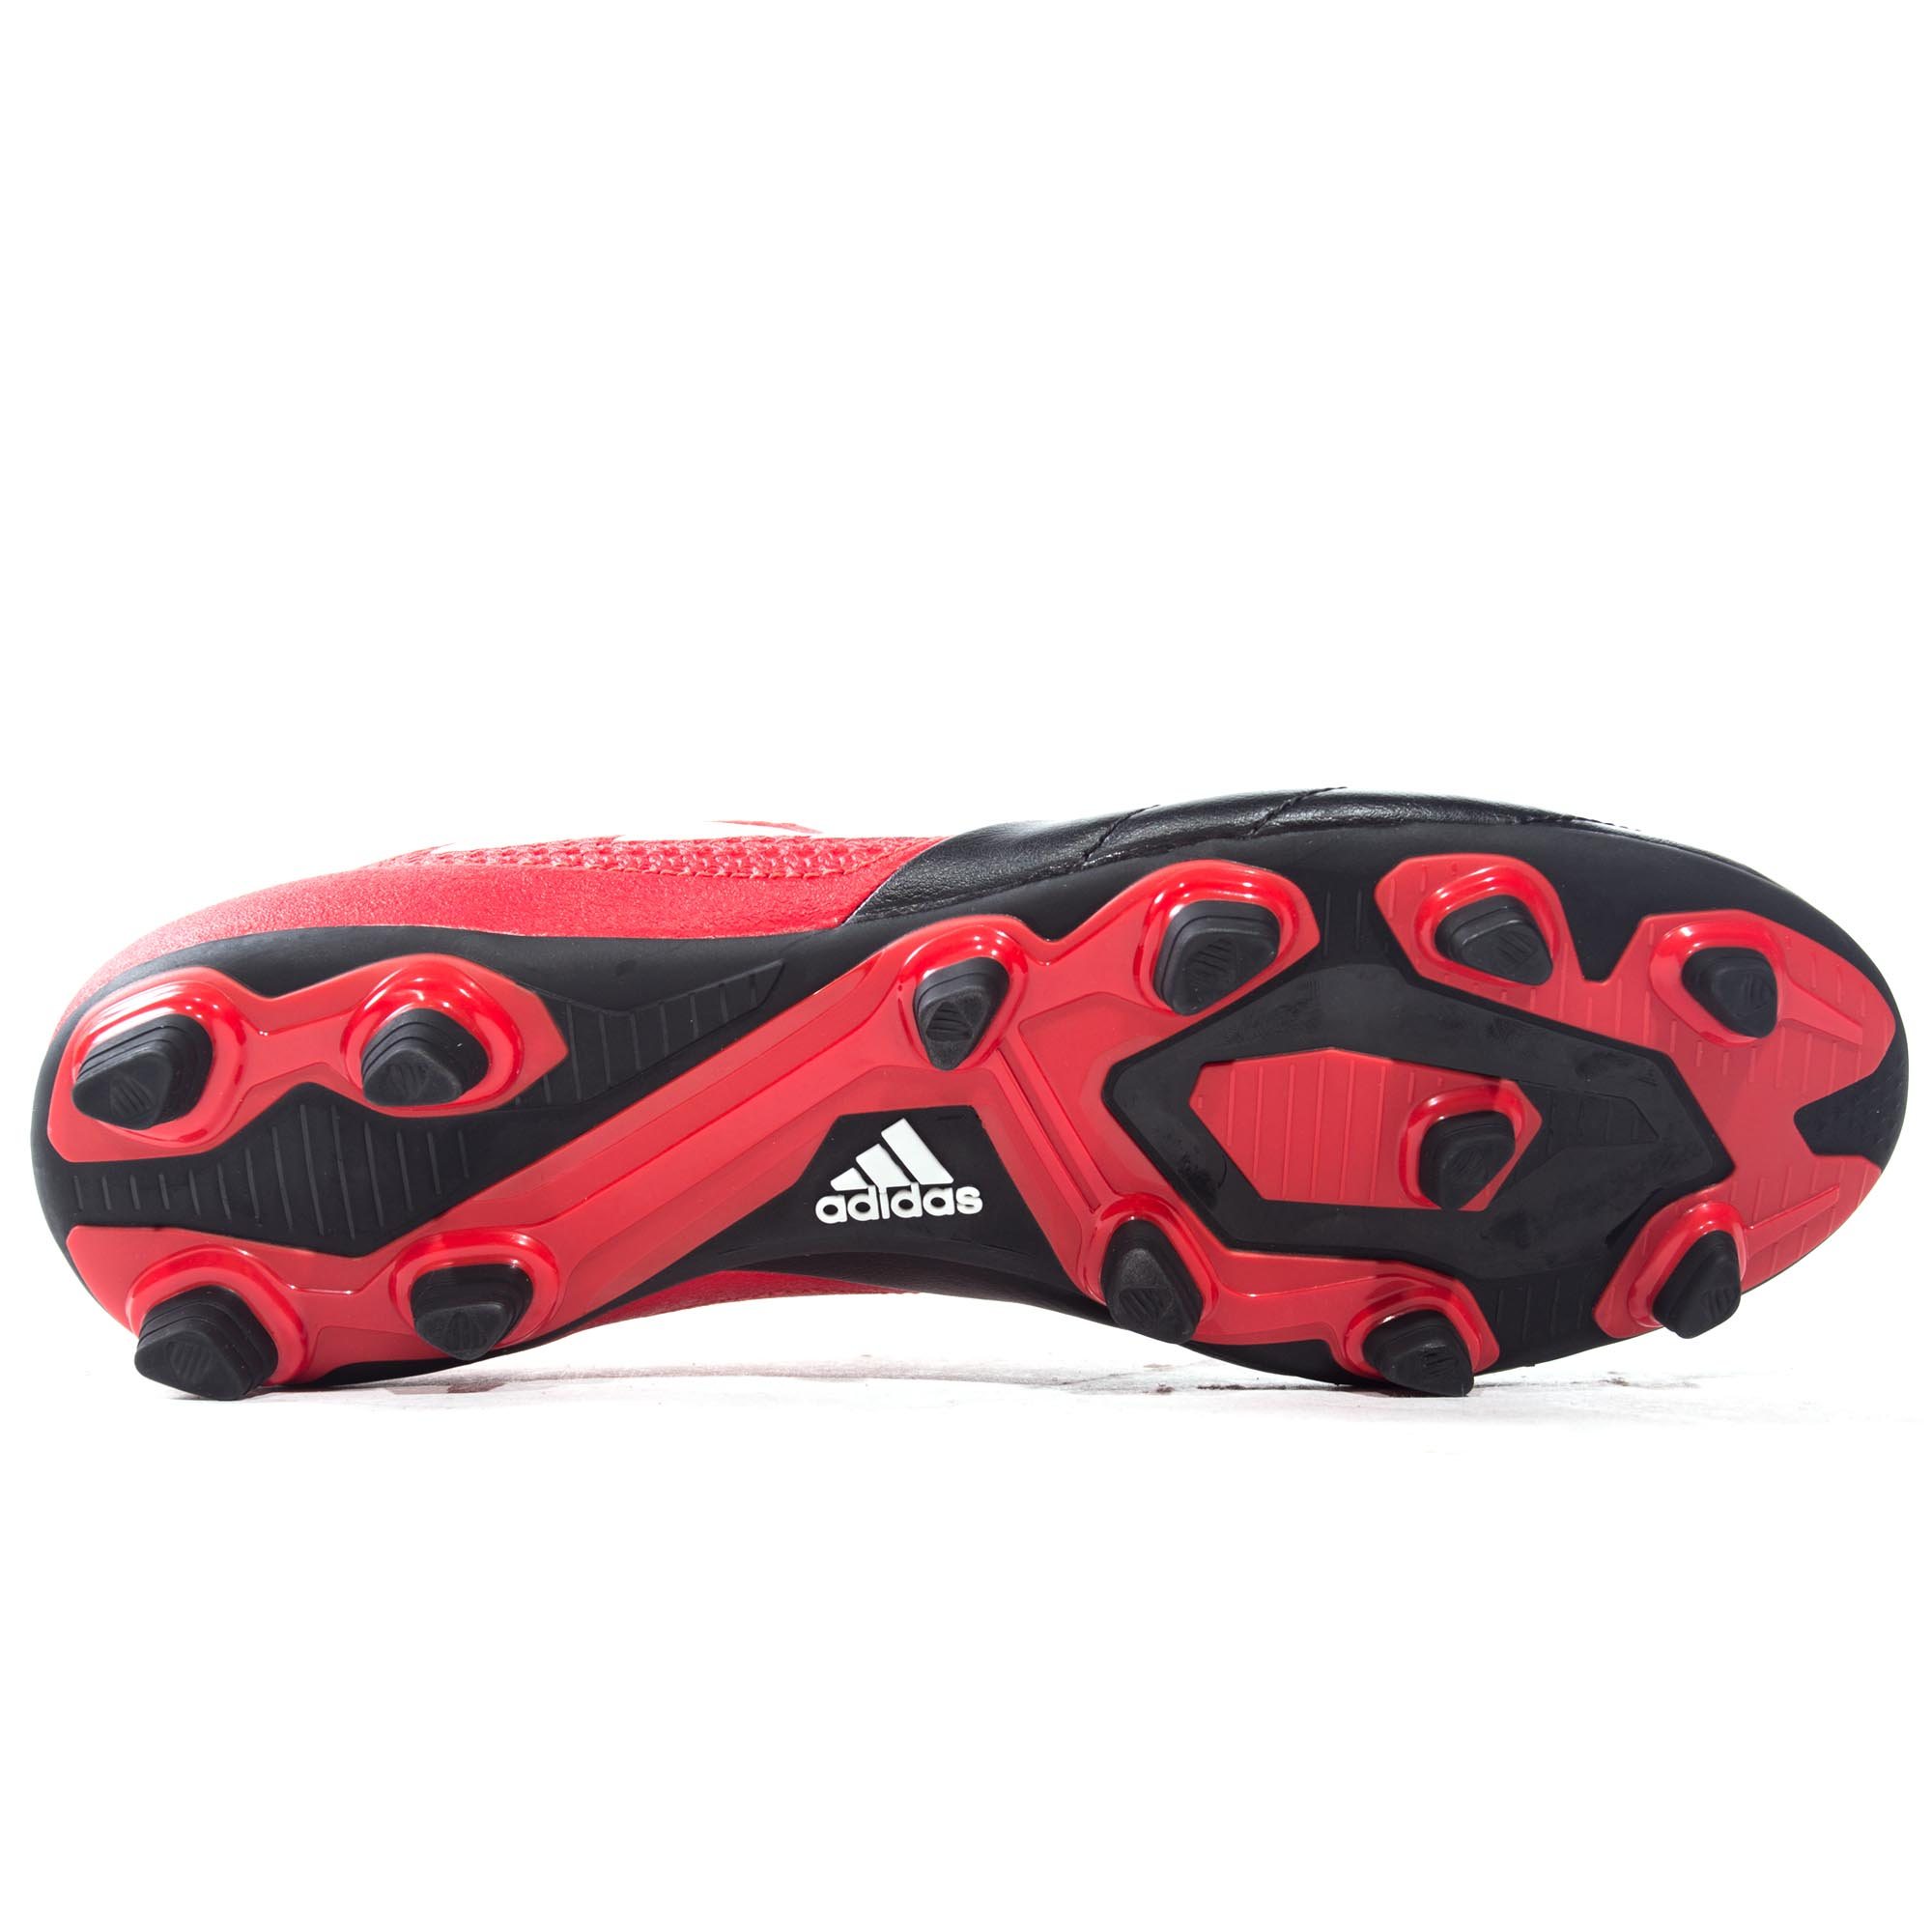 ADIDAS-ACE-17-4-FG-Firm-Ground-pour-homme-Football-Boot-Noir-Rouge miniature 7